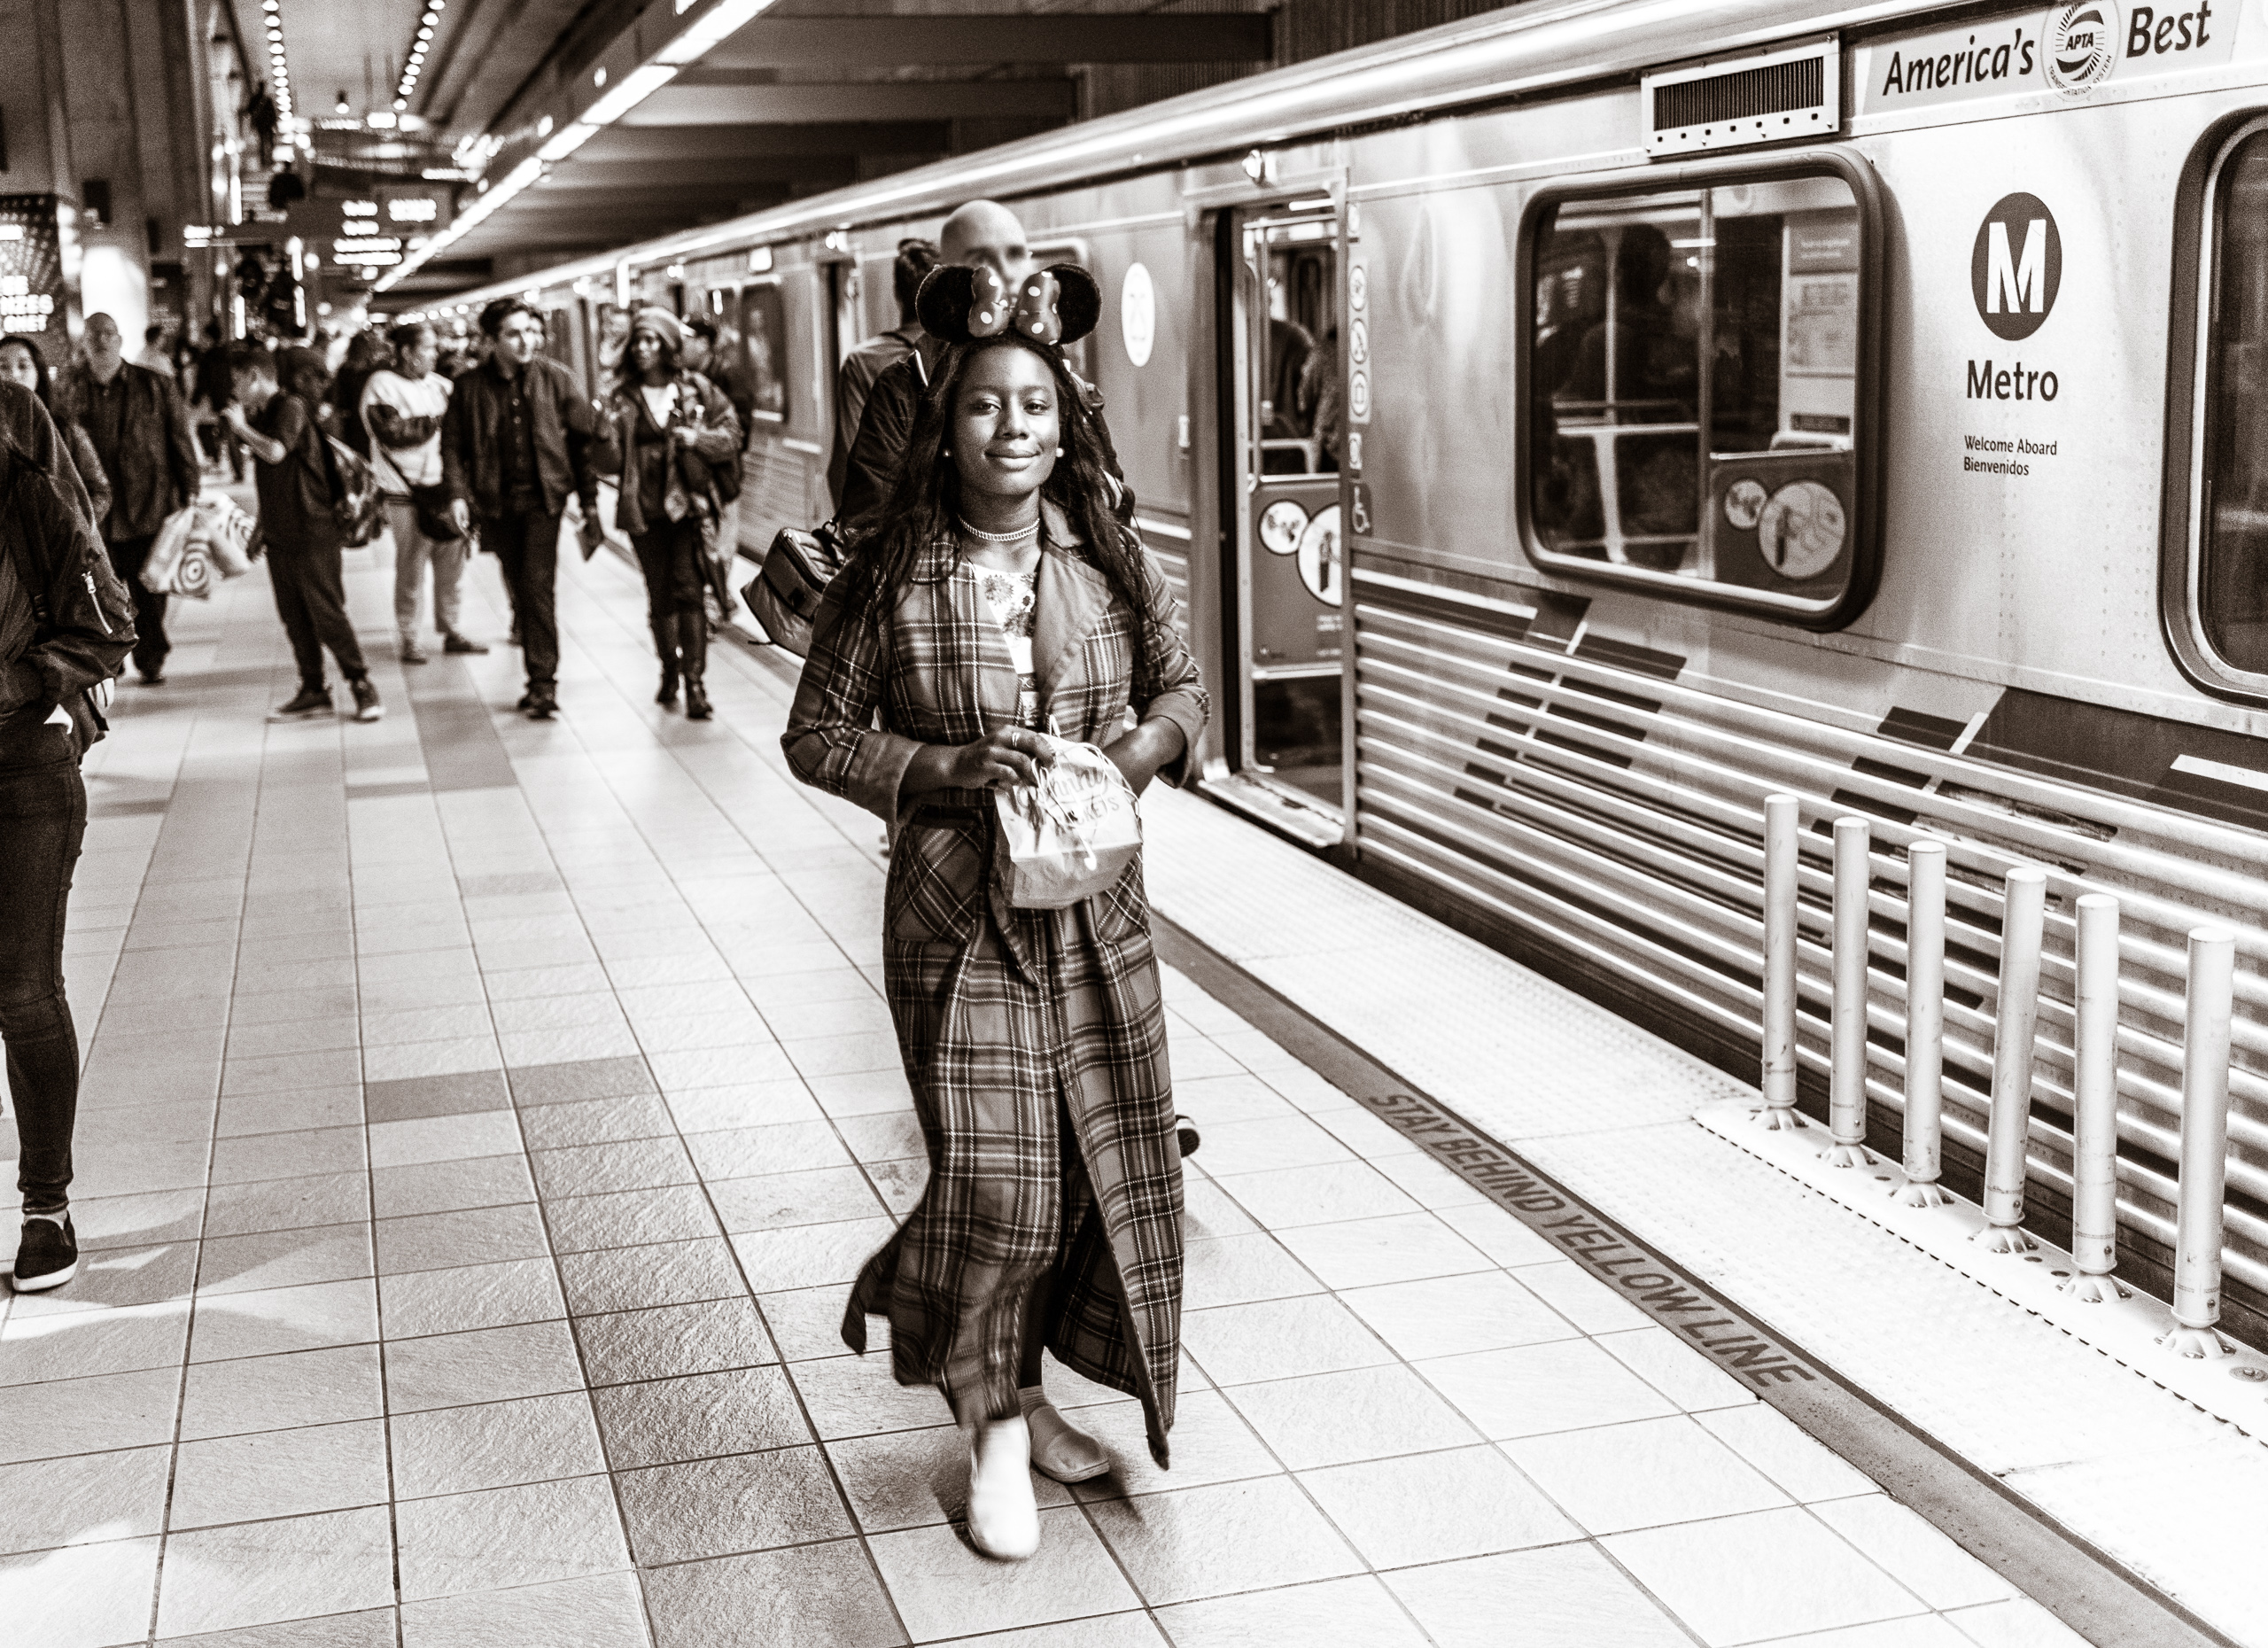 a young woman in a long coat walks across the platform wearing a pair of Minnie Mouse ears